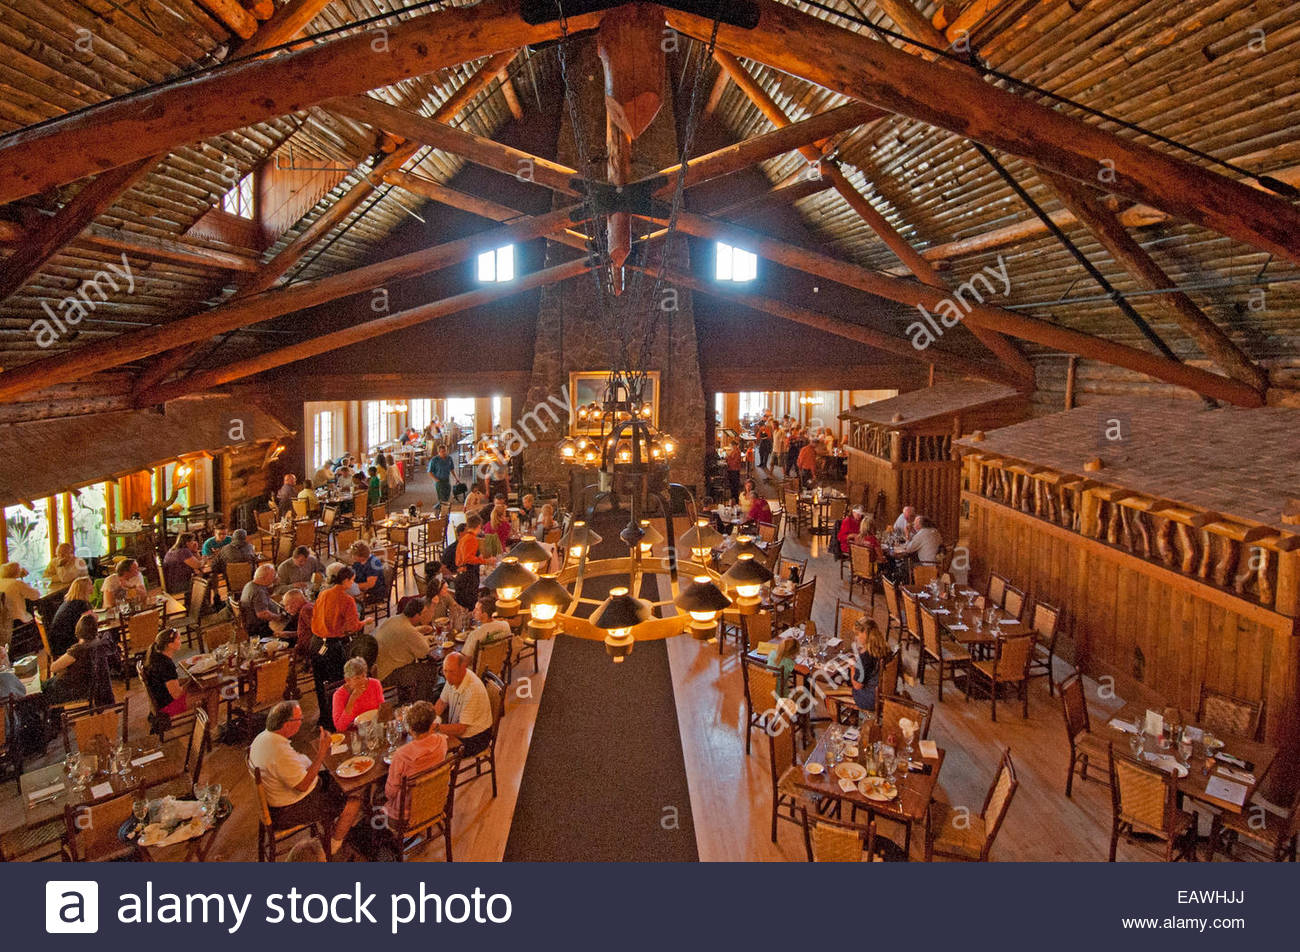 Attirant Tourists Eat In The Historic Dining Room At Old Faithful Inn.   Stock Image